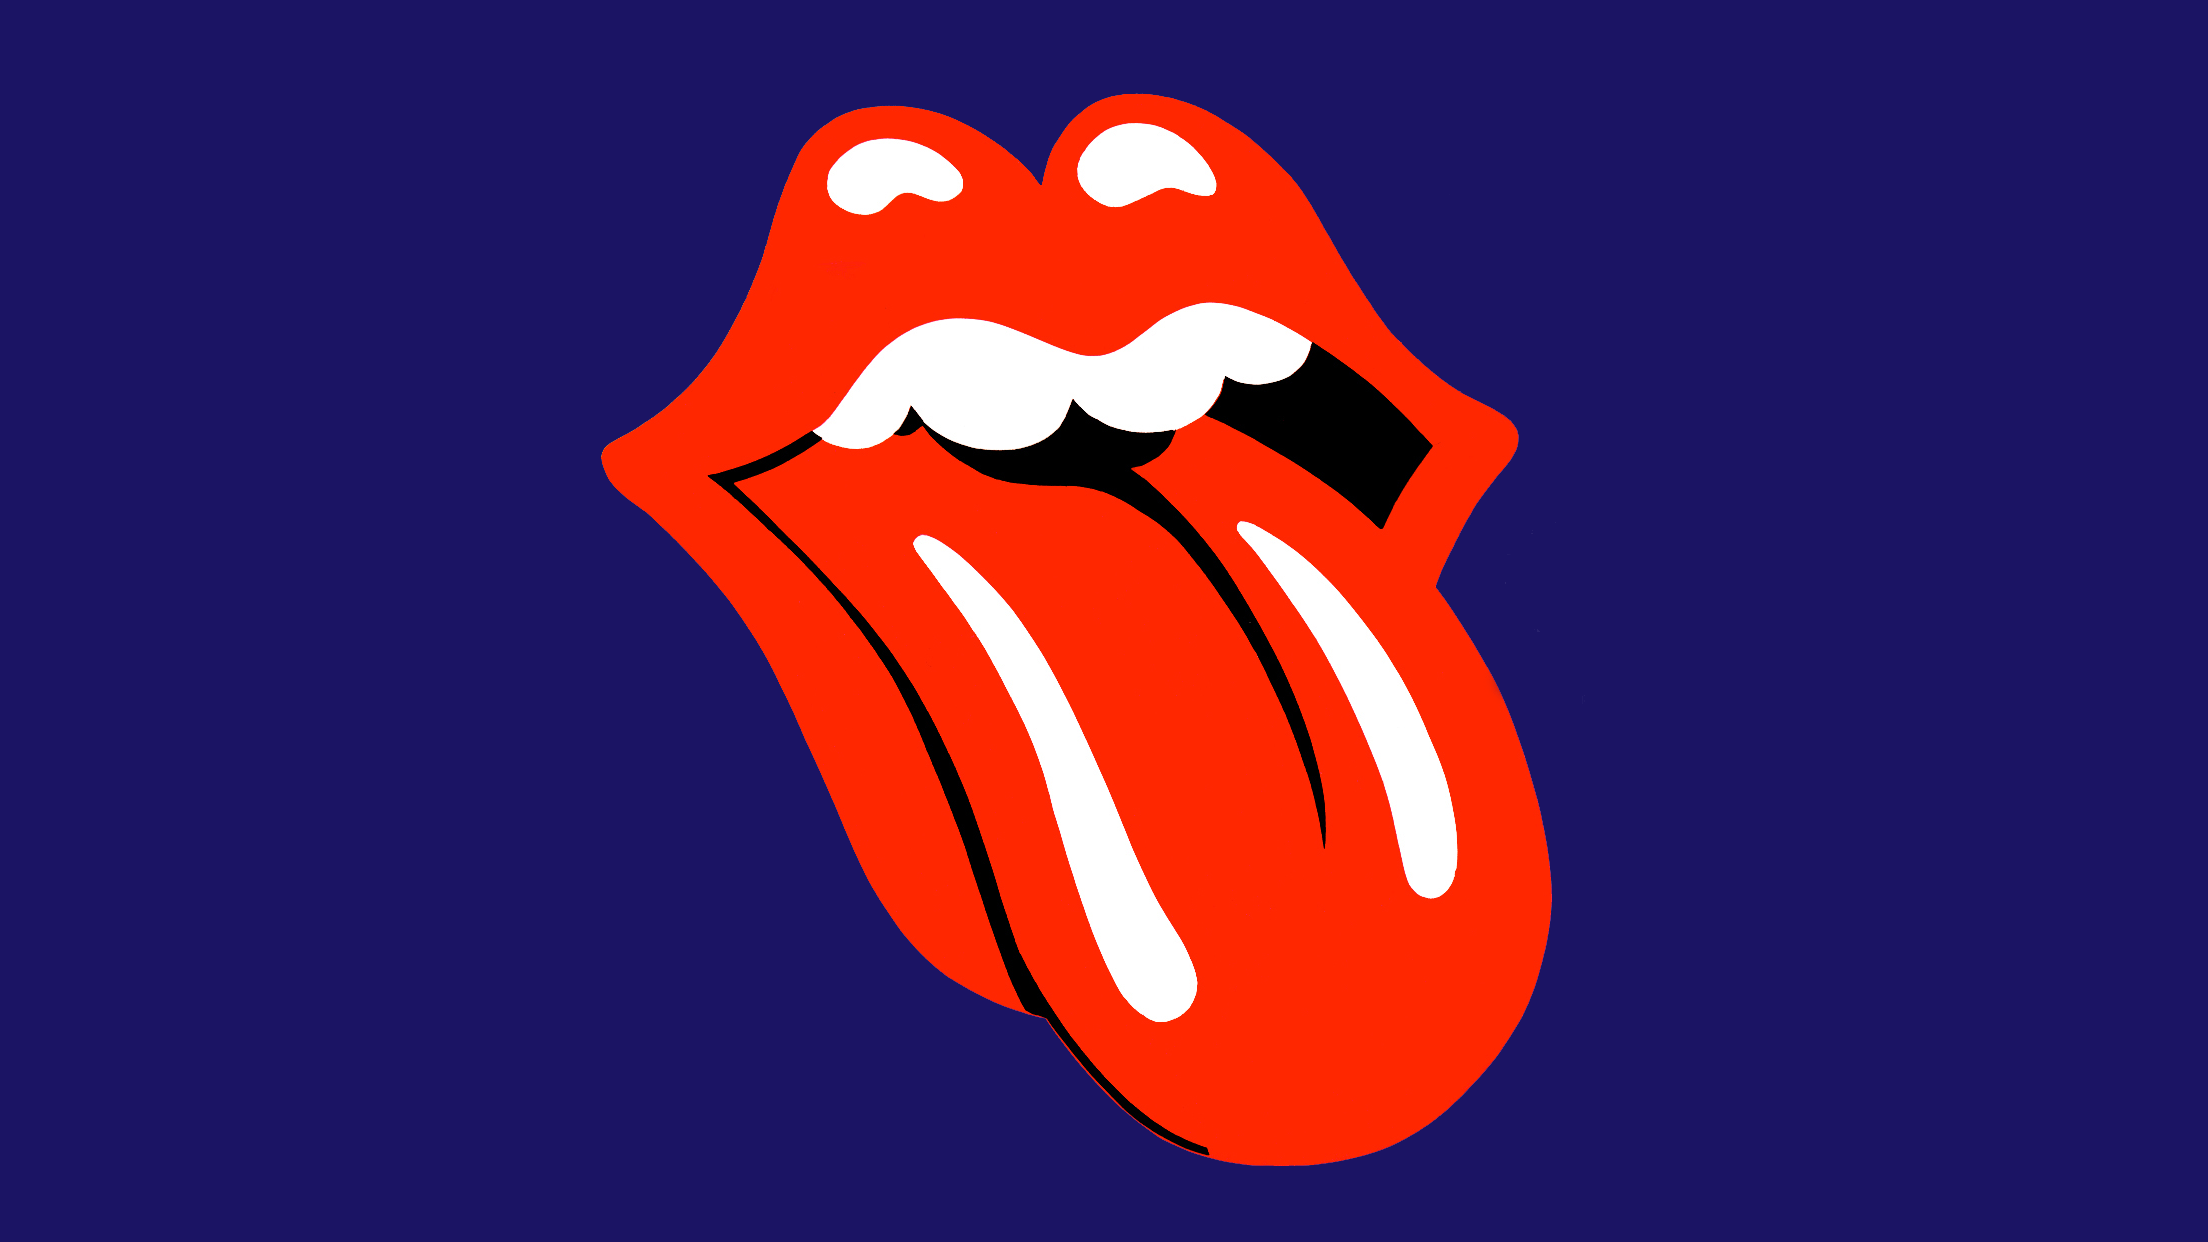 The Rolling Stones Wallpaper 2208x1242